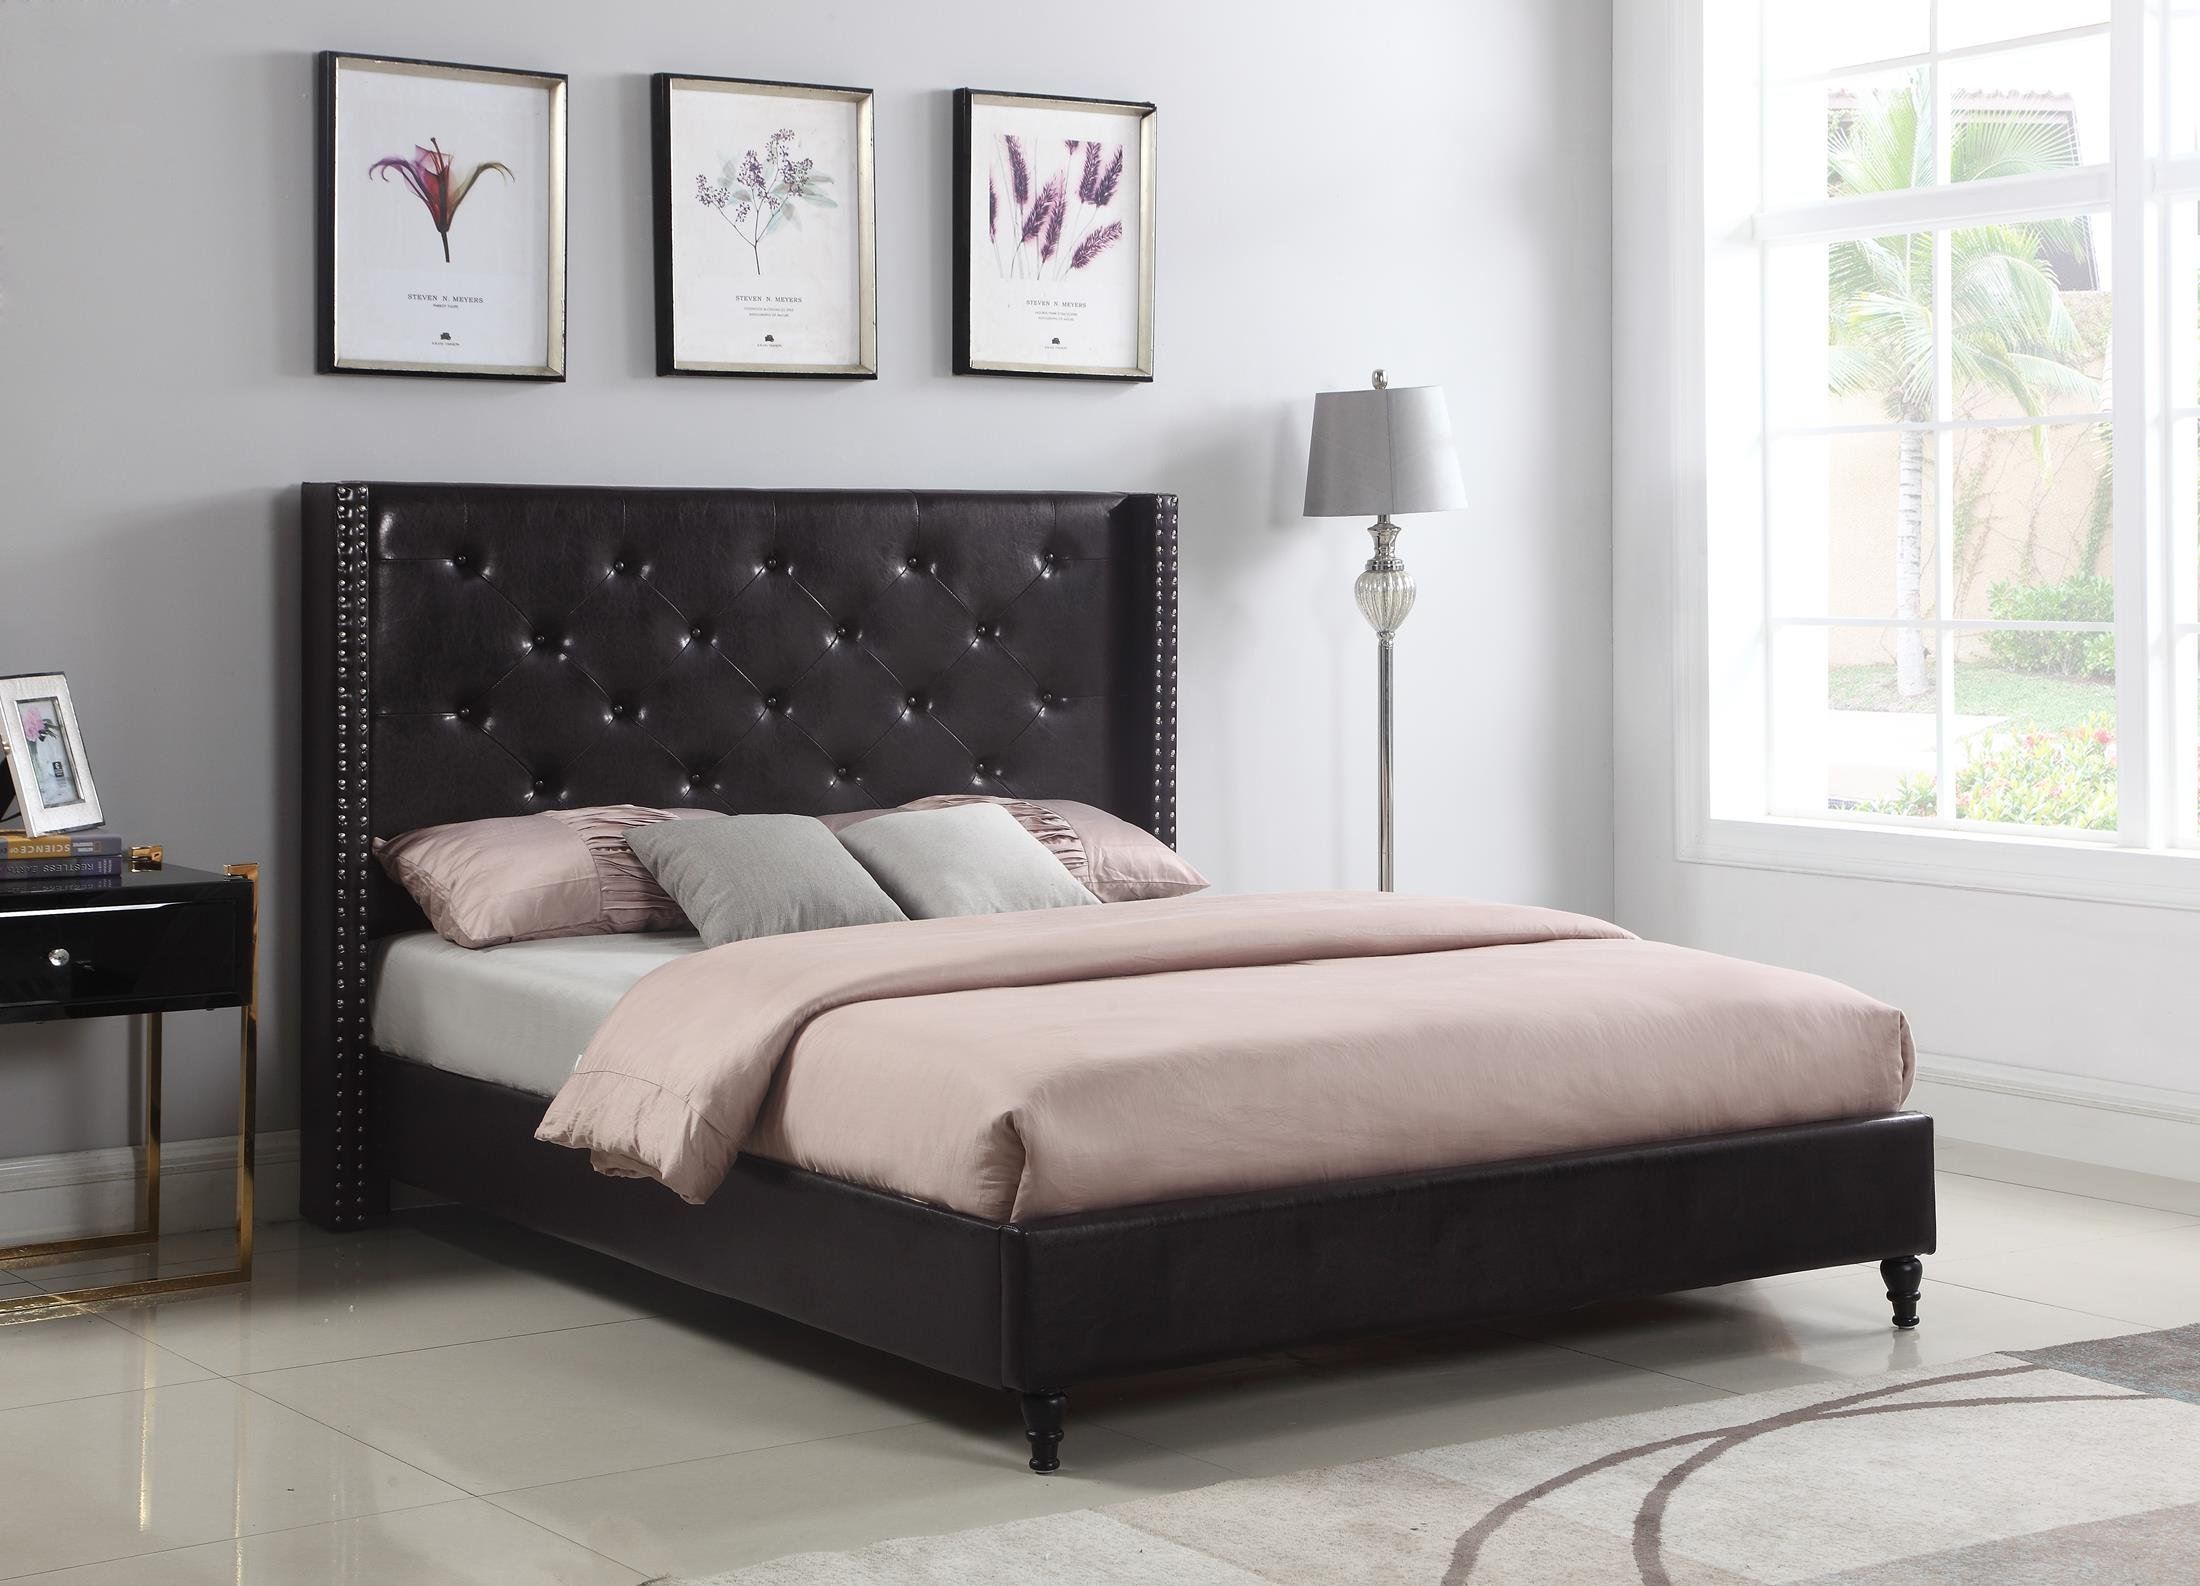 Home Life Premiere Classics Leather Dark Brown Tufted with Nails Leather 51'' Tall Headboard Platform Bed with Slats Full - Complete Bed 5 Year Warranty Included 007